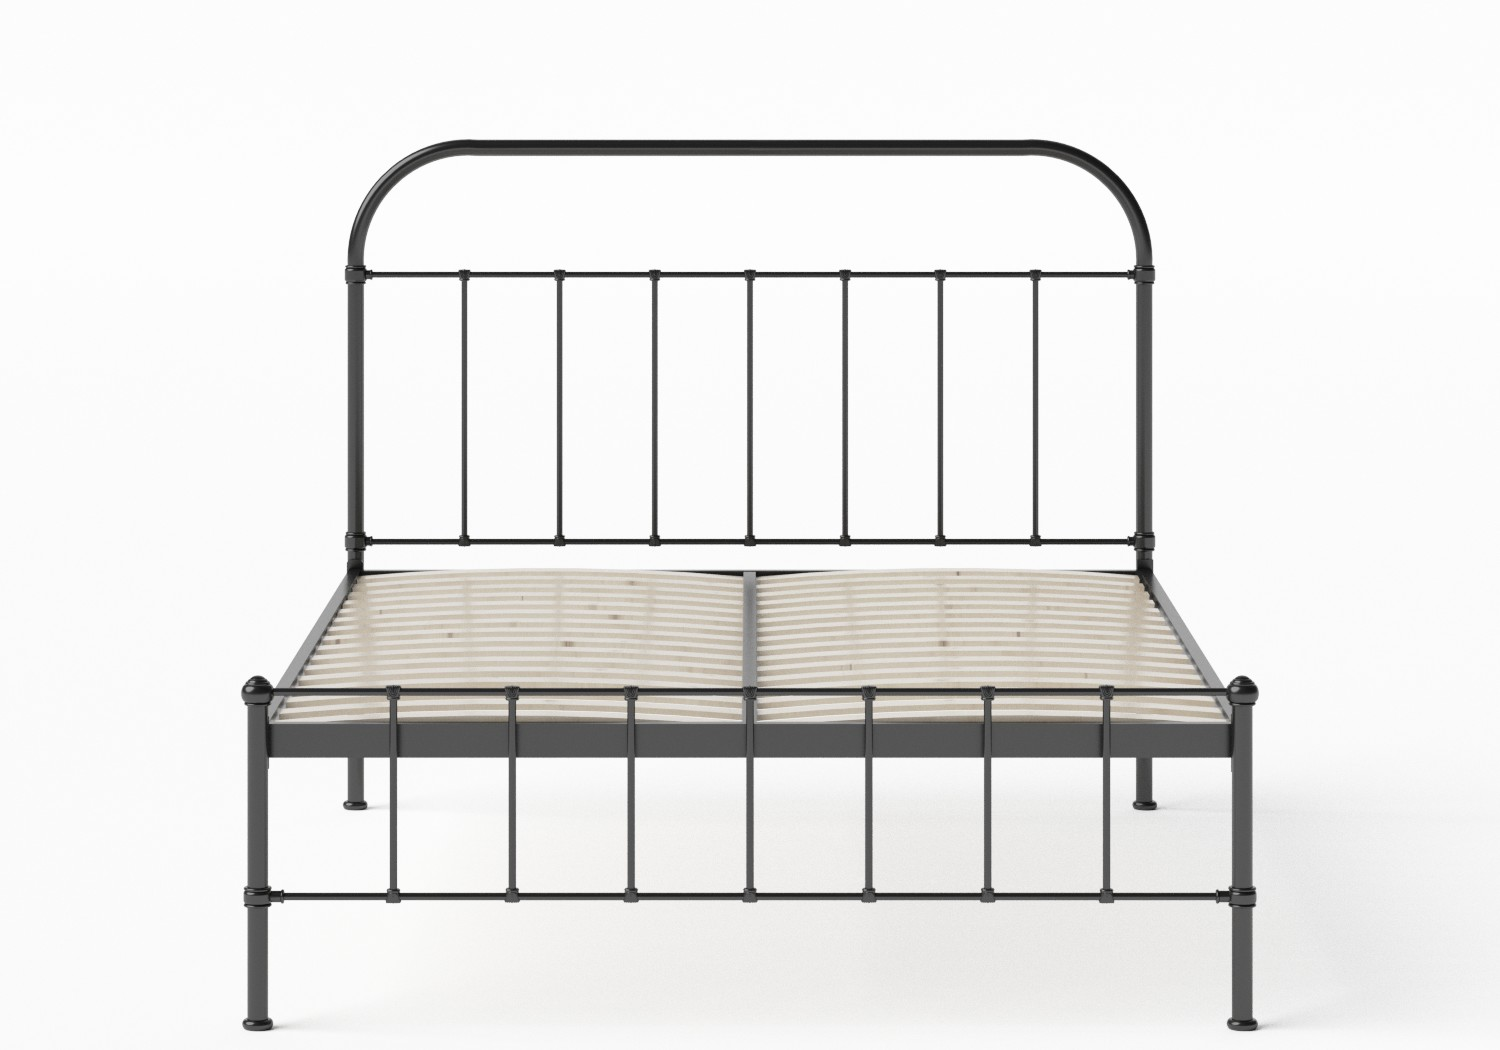 Solomon Iron/Metal Bed in Satin Black shown with slatted frame